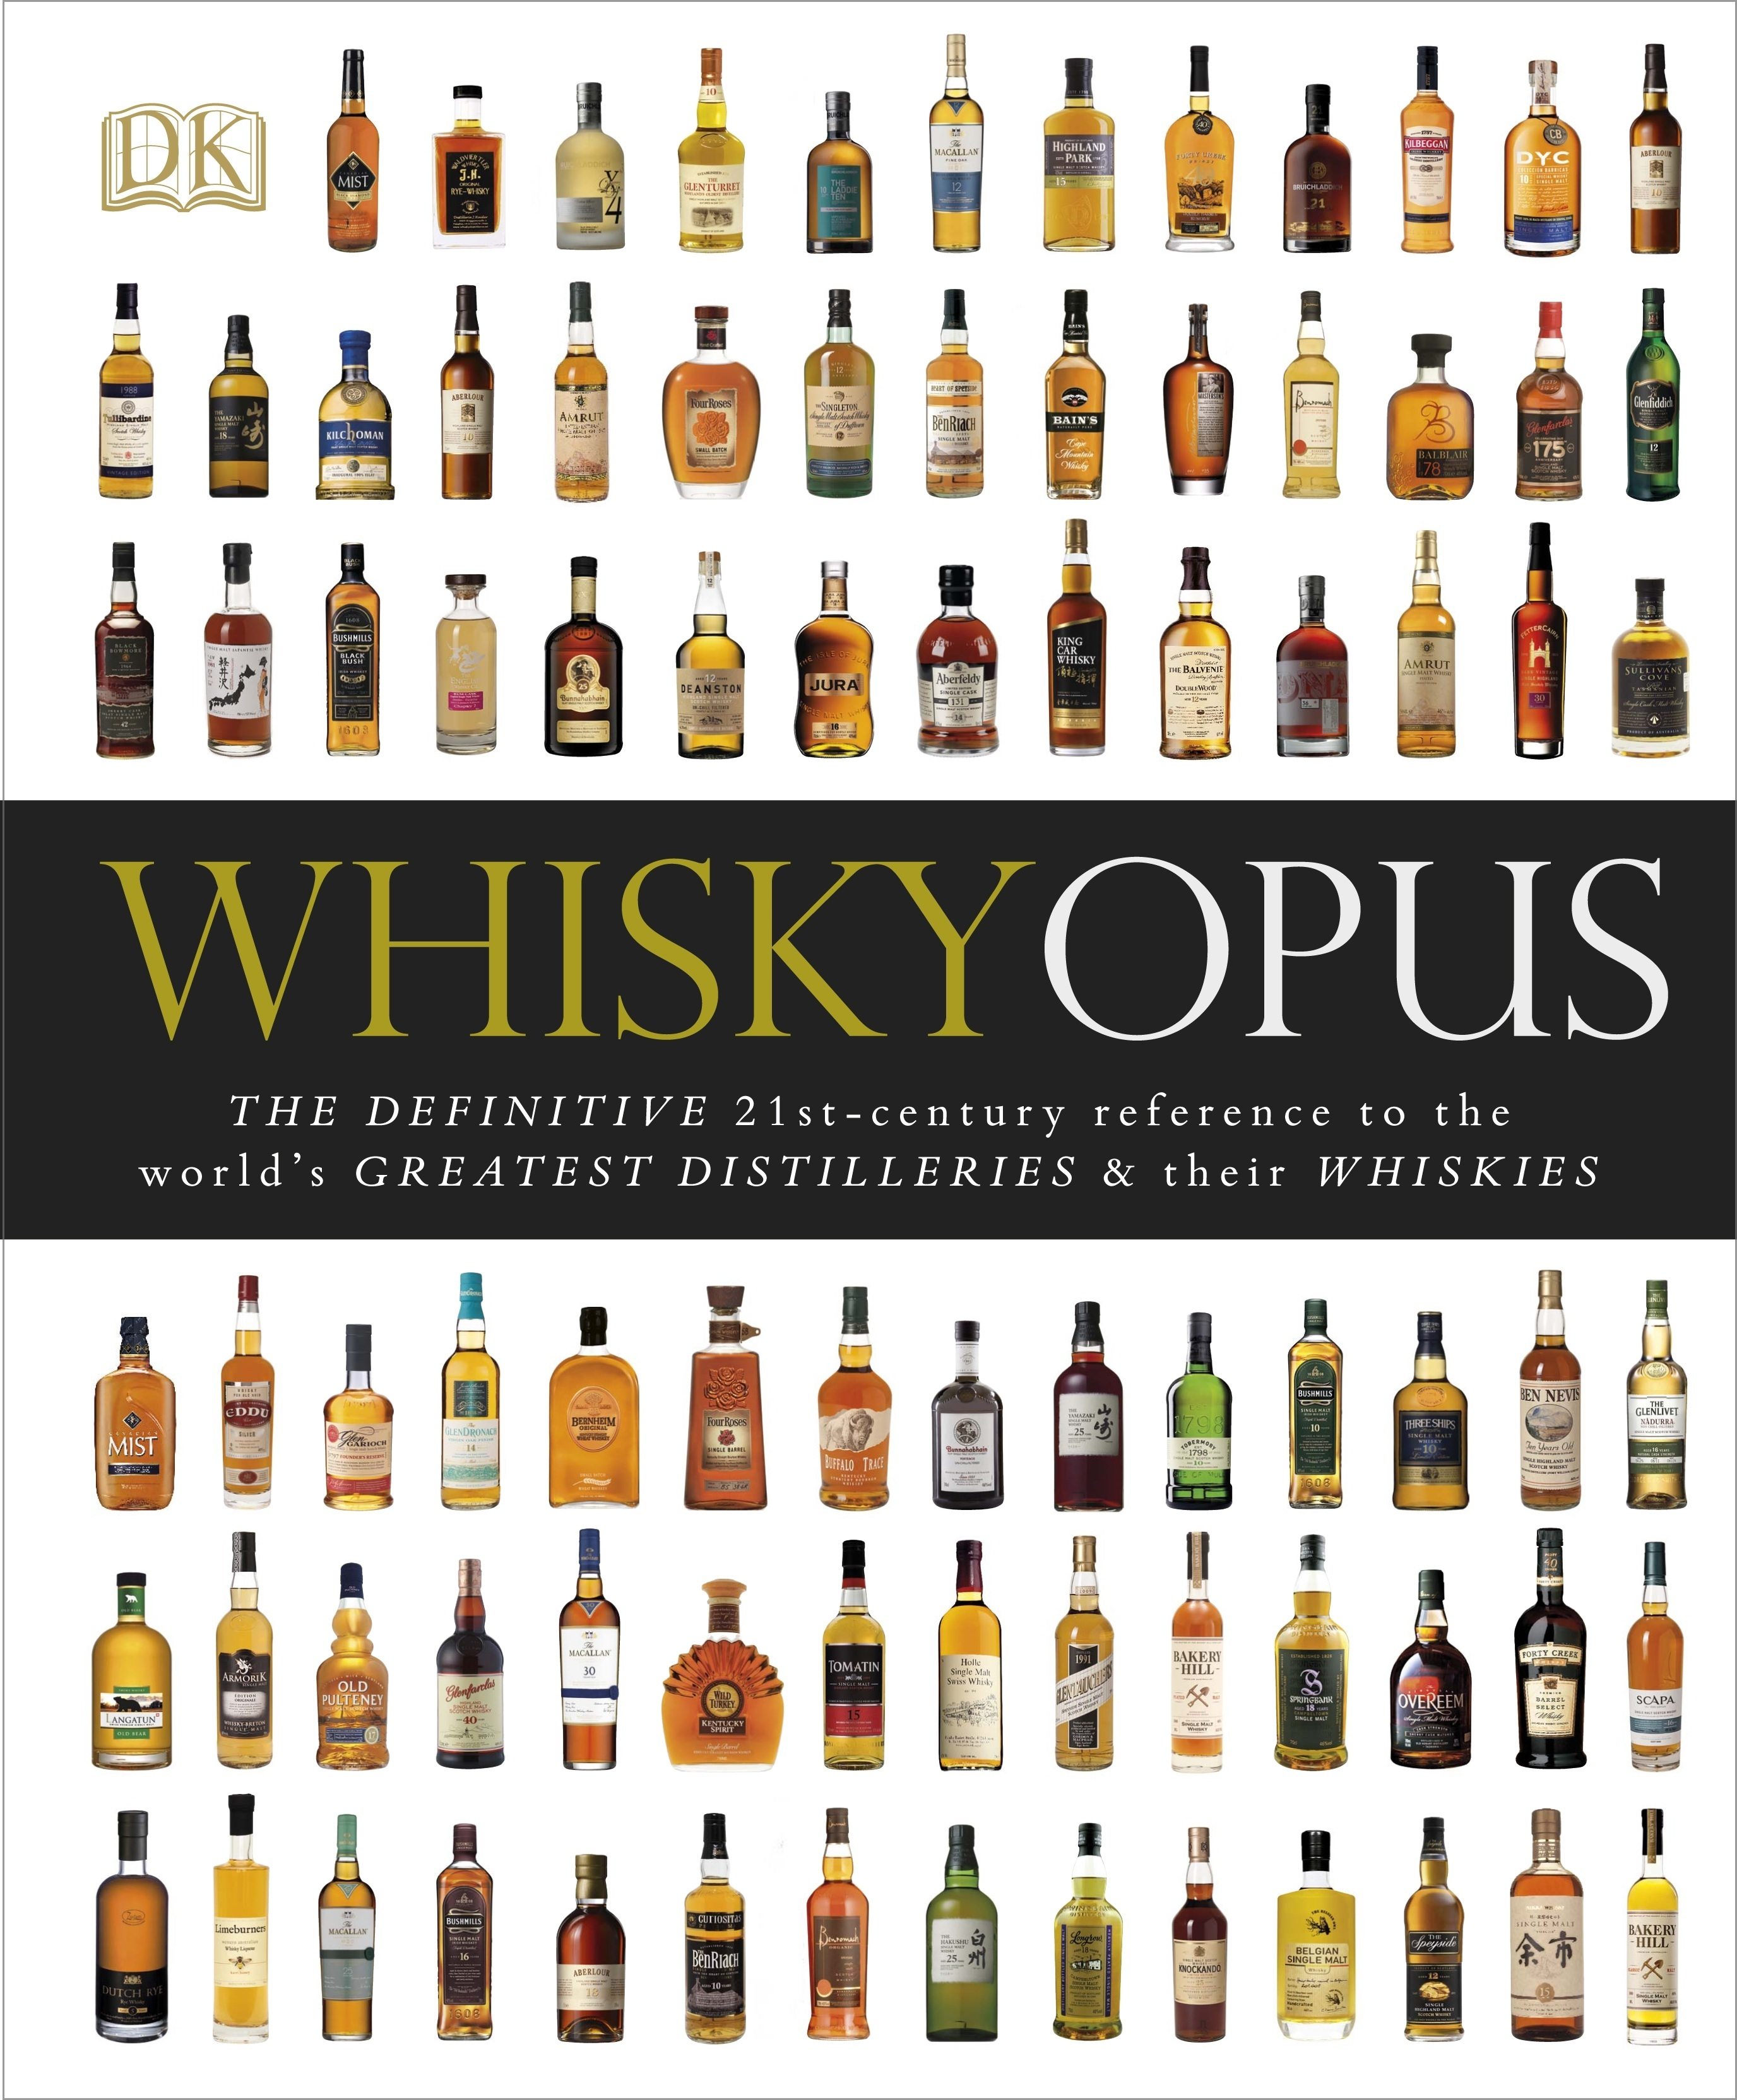 Whisky Opus Dominic Roskrow